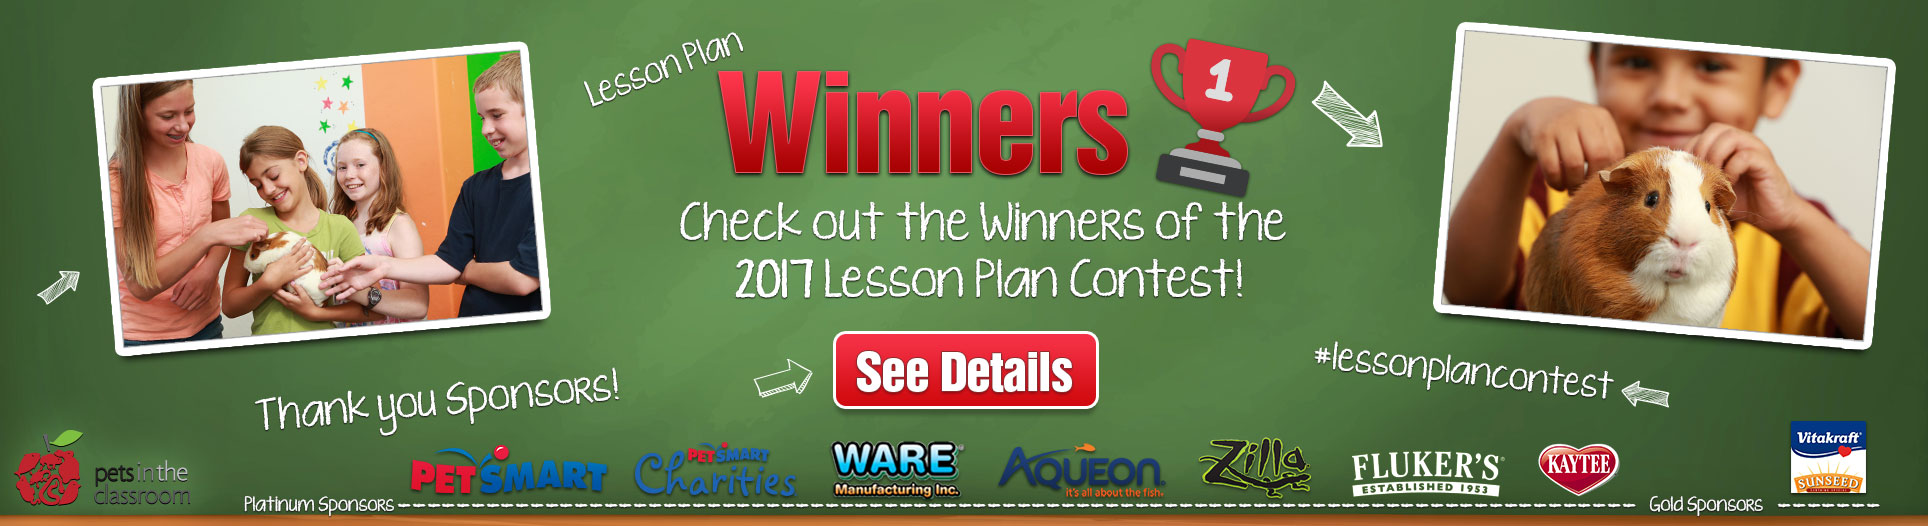 2017 Lesson Plan Contest Winners